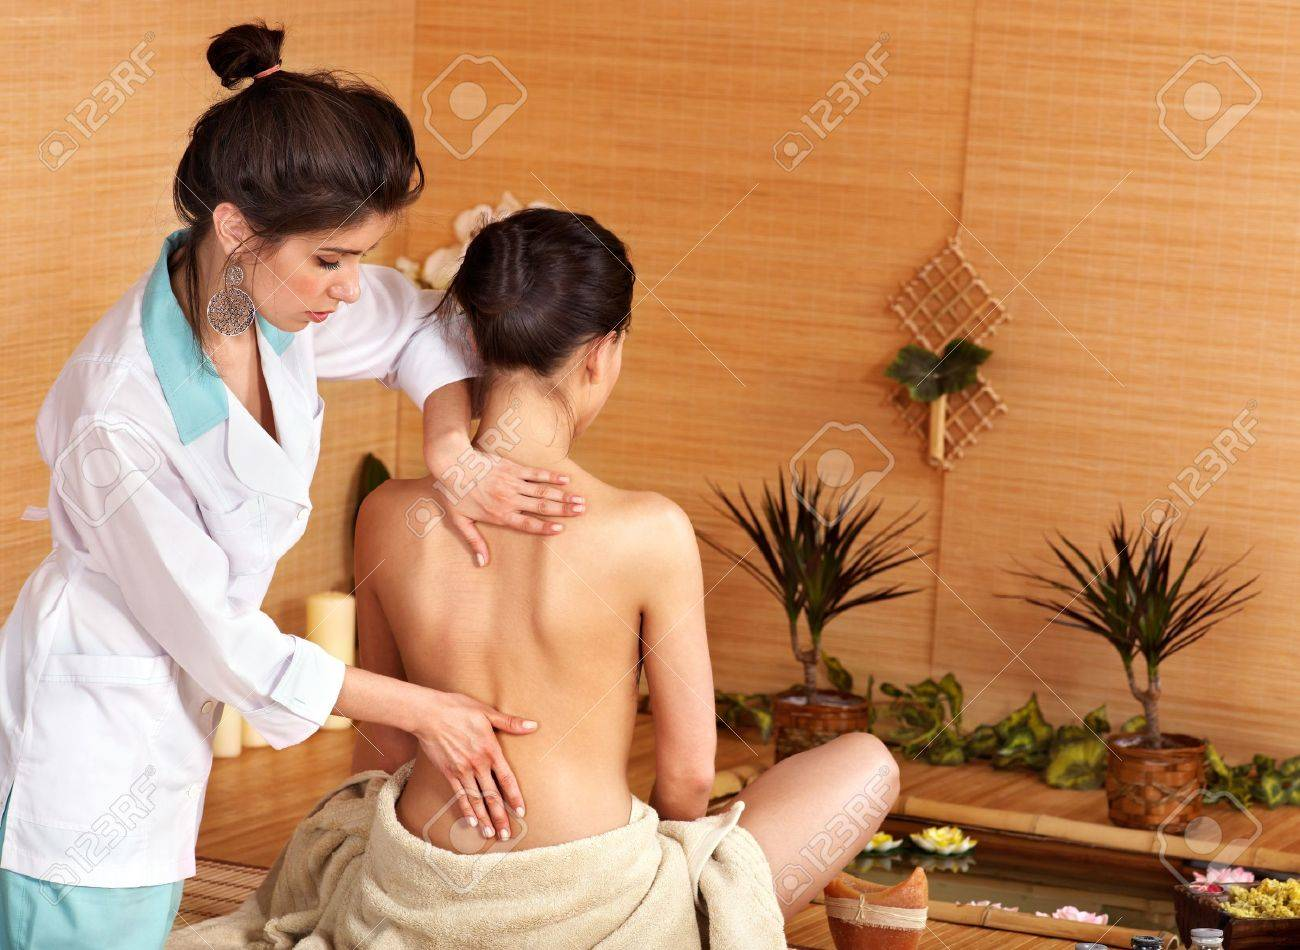 Young woman getting massage in bamboo spa.. Stock Photo - 9620296